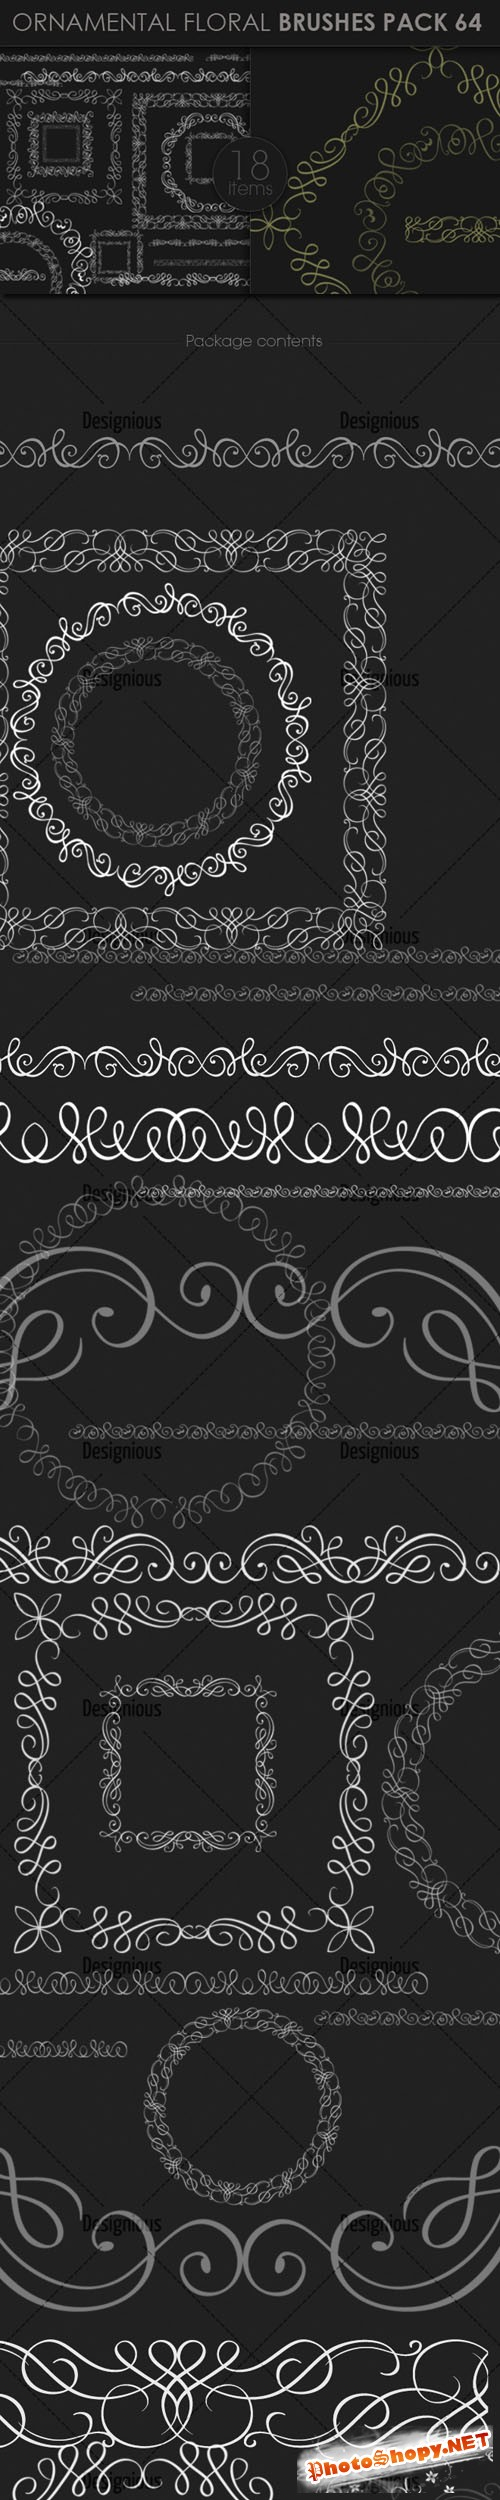 Ornamental Floral Photoshop Brushes Pack 64